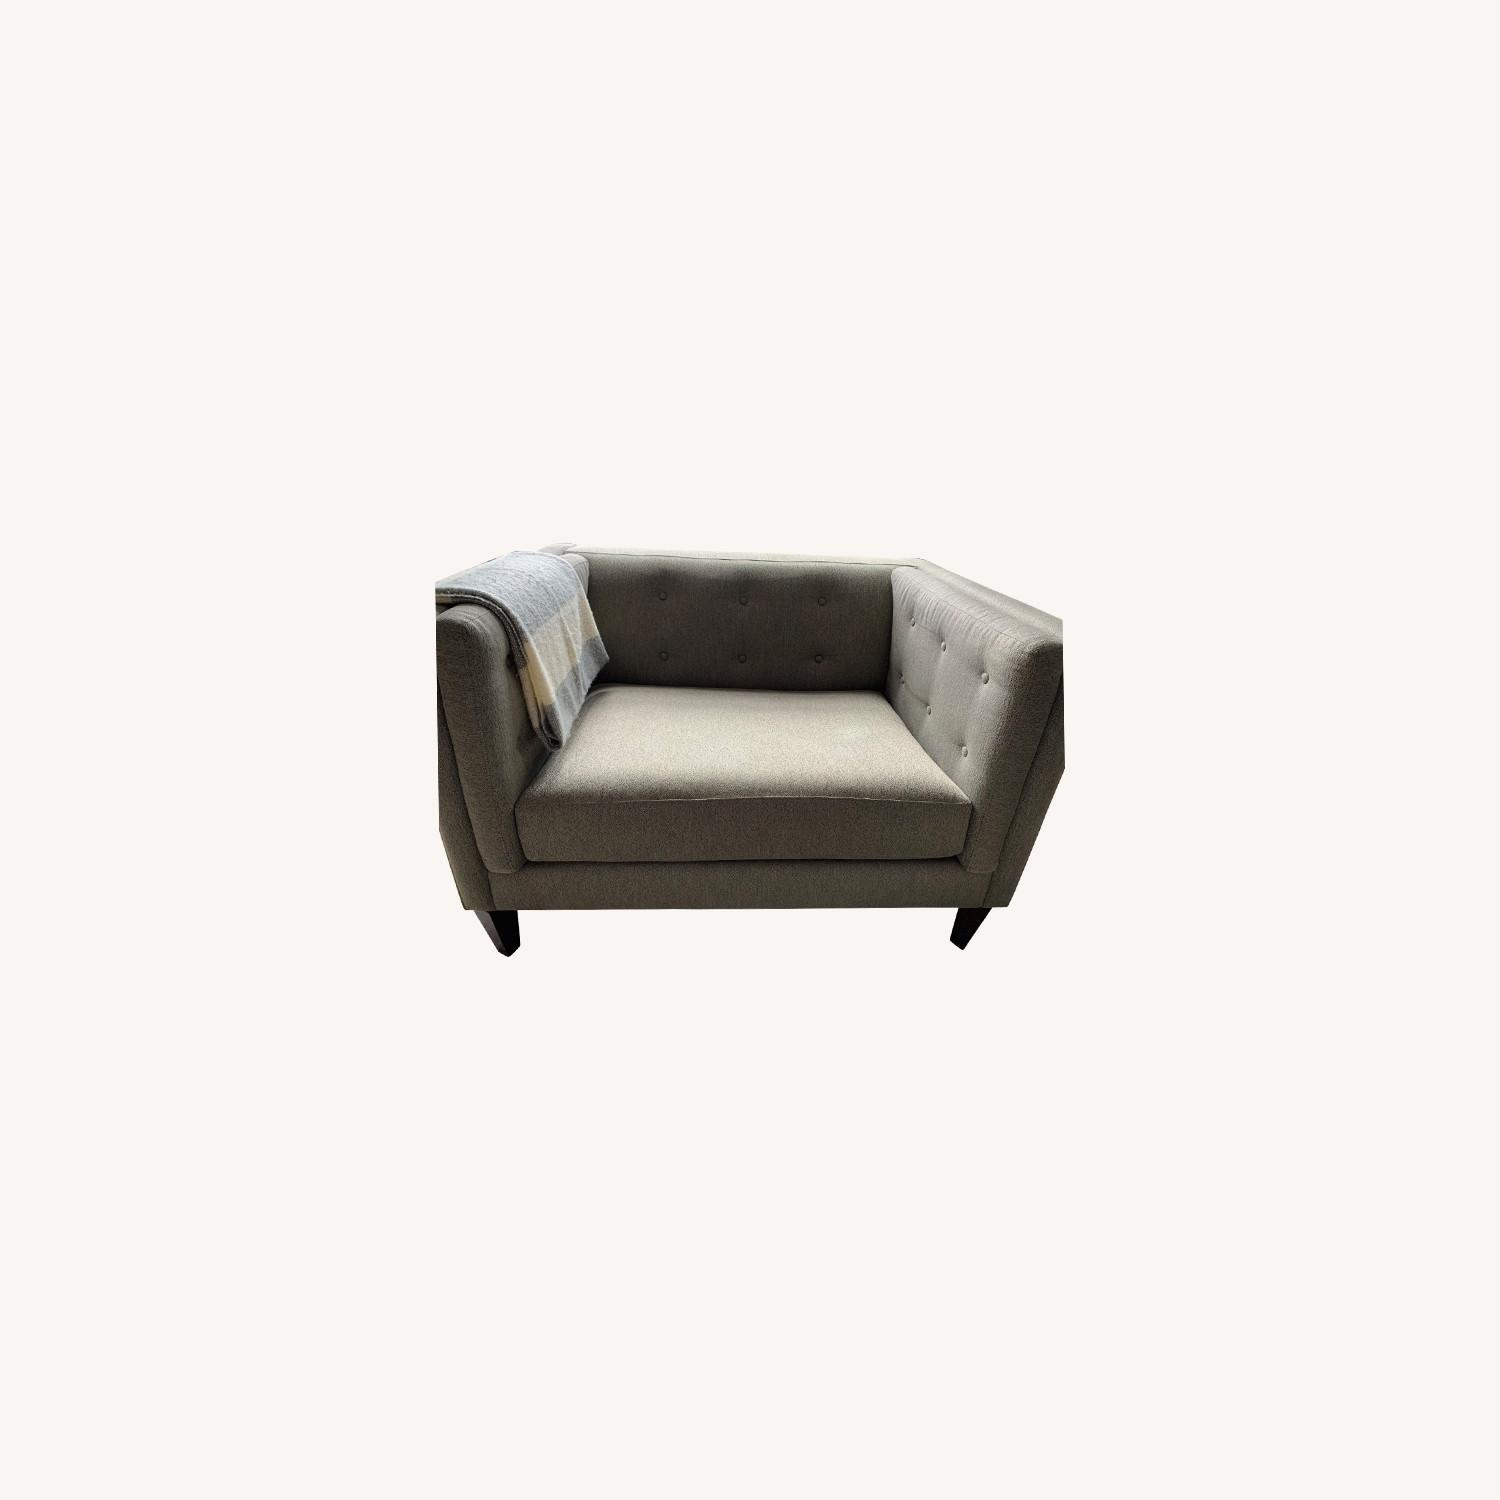 Crate & Barrel Tufted Chair - image-0